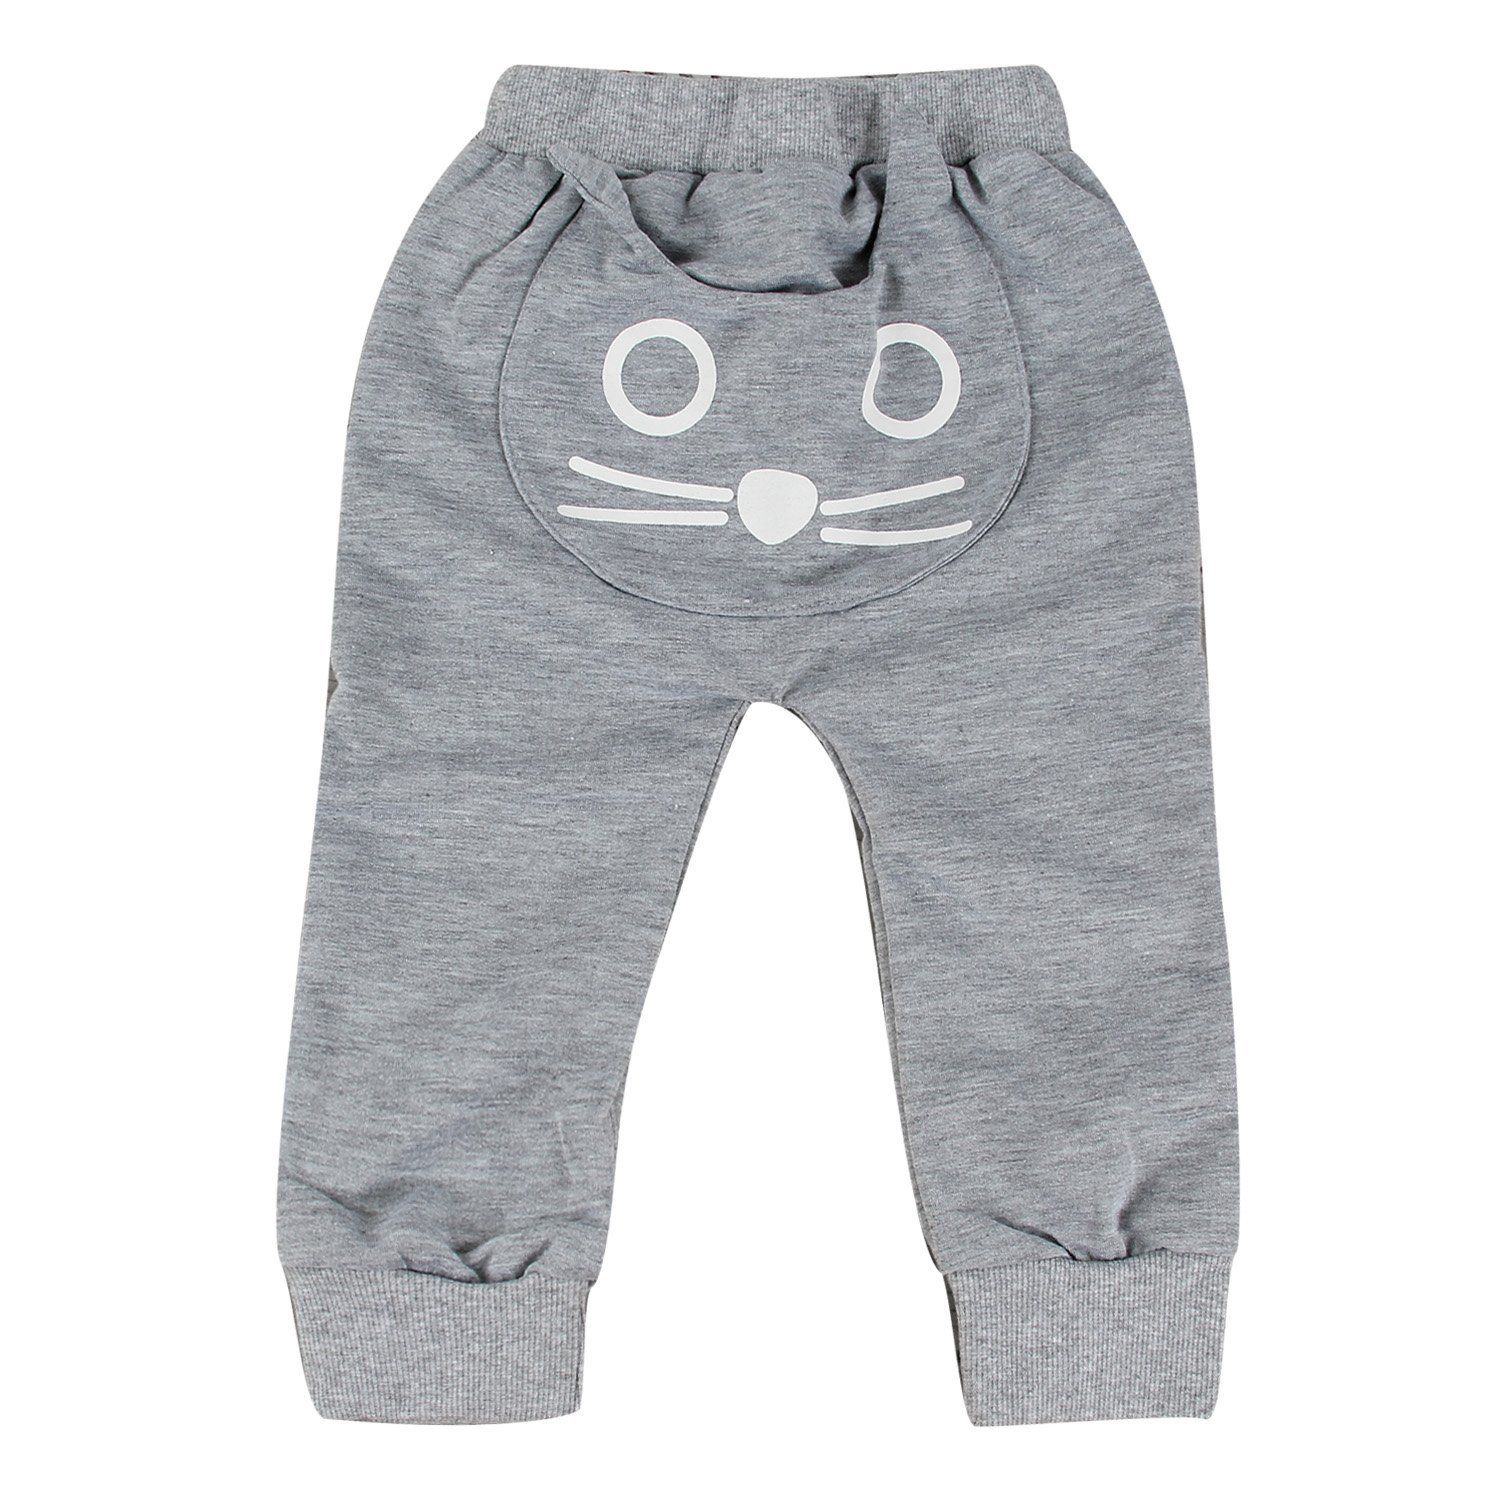 2017 Fashion Toddler Infant Kids Baby Boy Girl Cat Harem Pants Trousers Leggings Bottoms toddler pants купить в Москве 2019